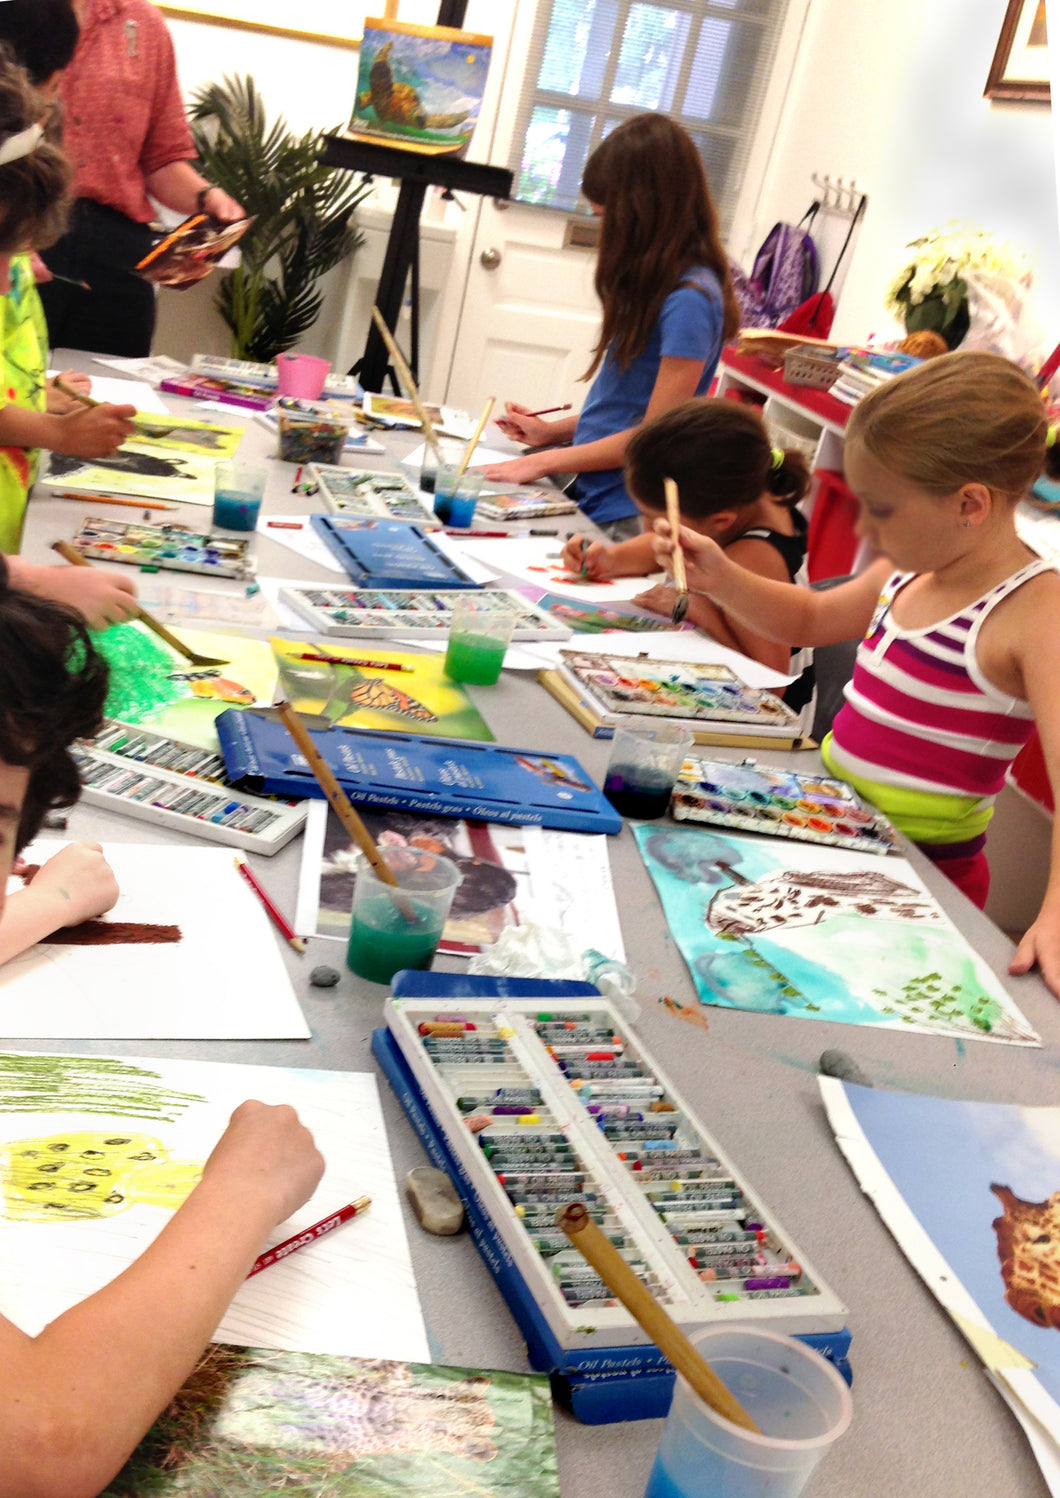 SUMMER ART CAMP 2 - Monday thru Friday - Jul 6 to Jul 10 - 9:00am-12:00pm